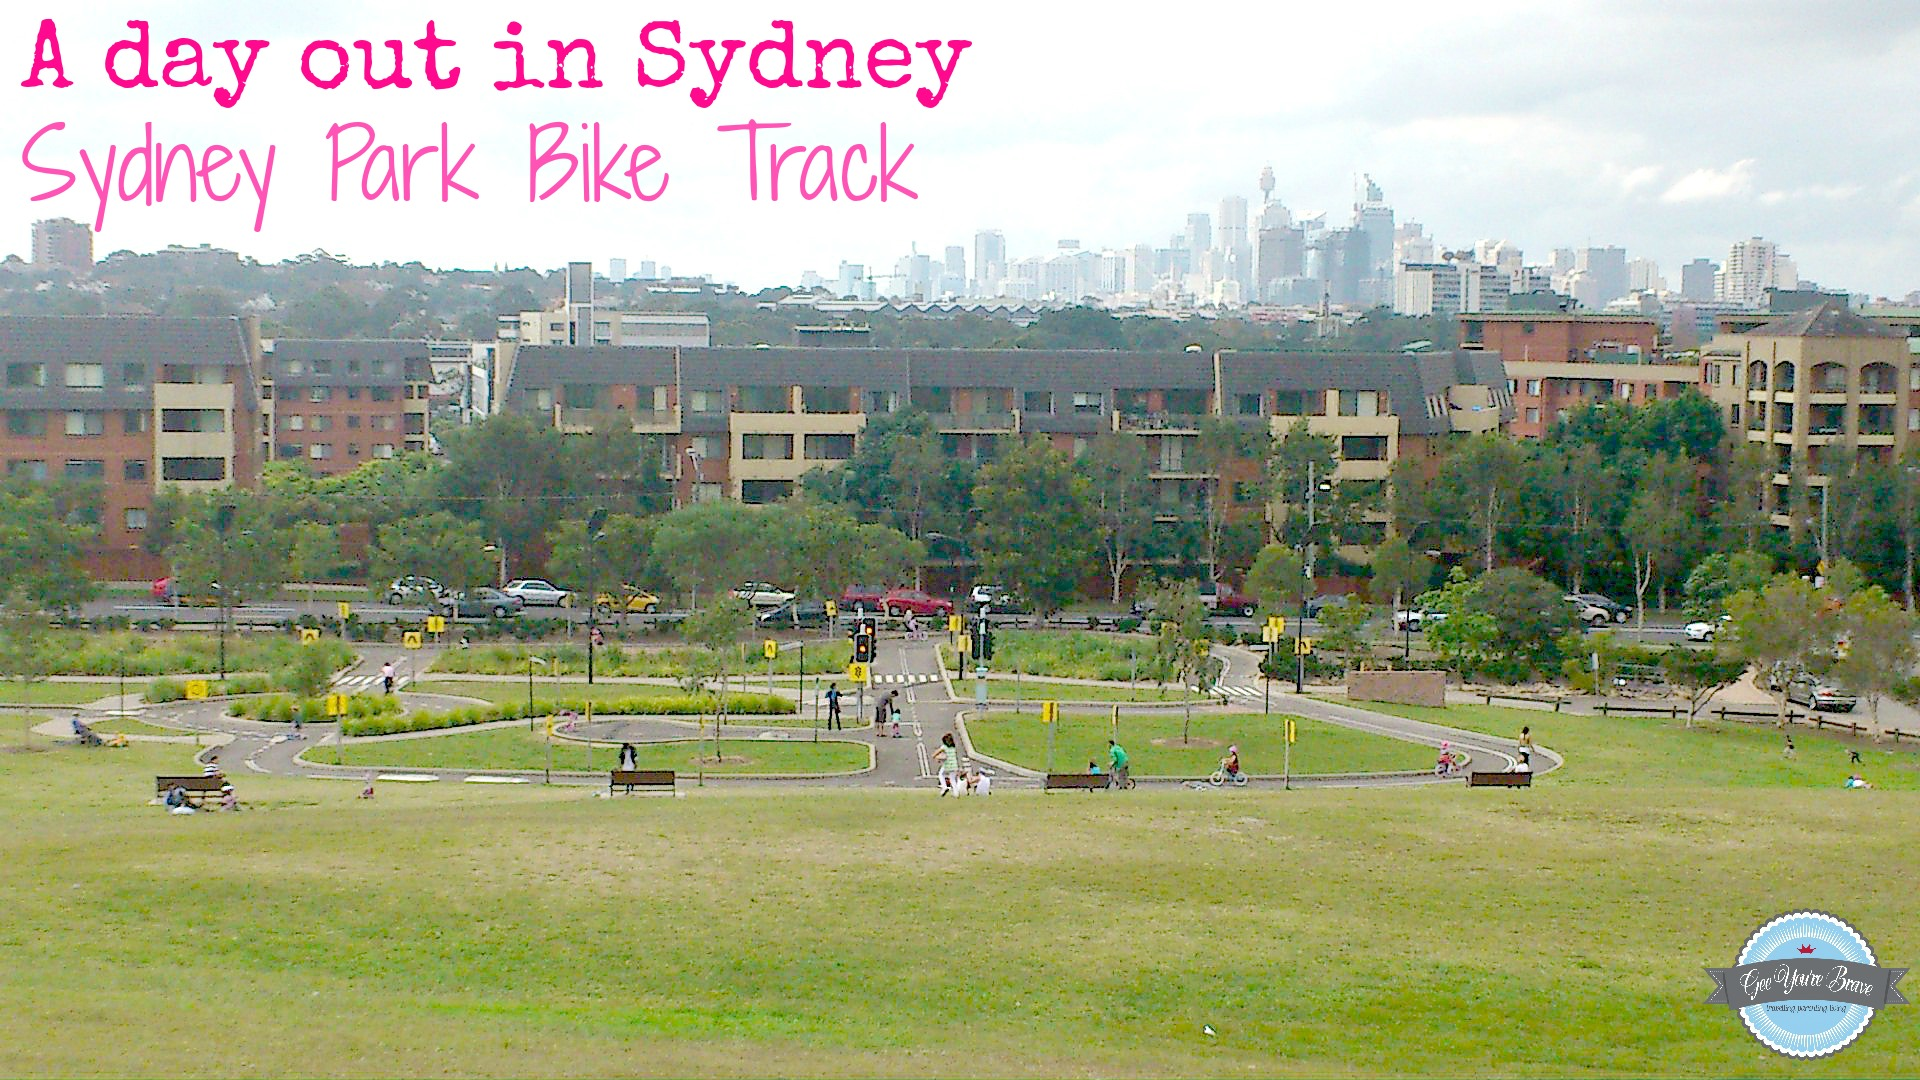 A Day Out In Sydney With Kids Sydney Bike Track Gee You Re Brave